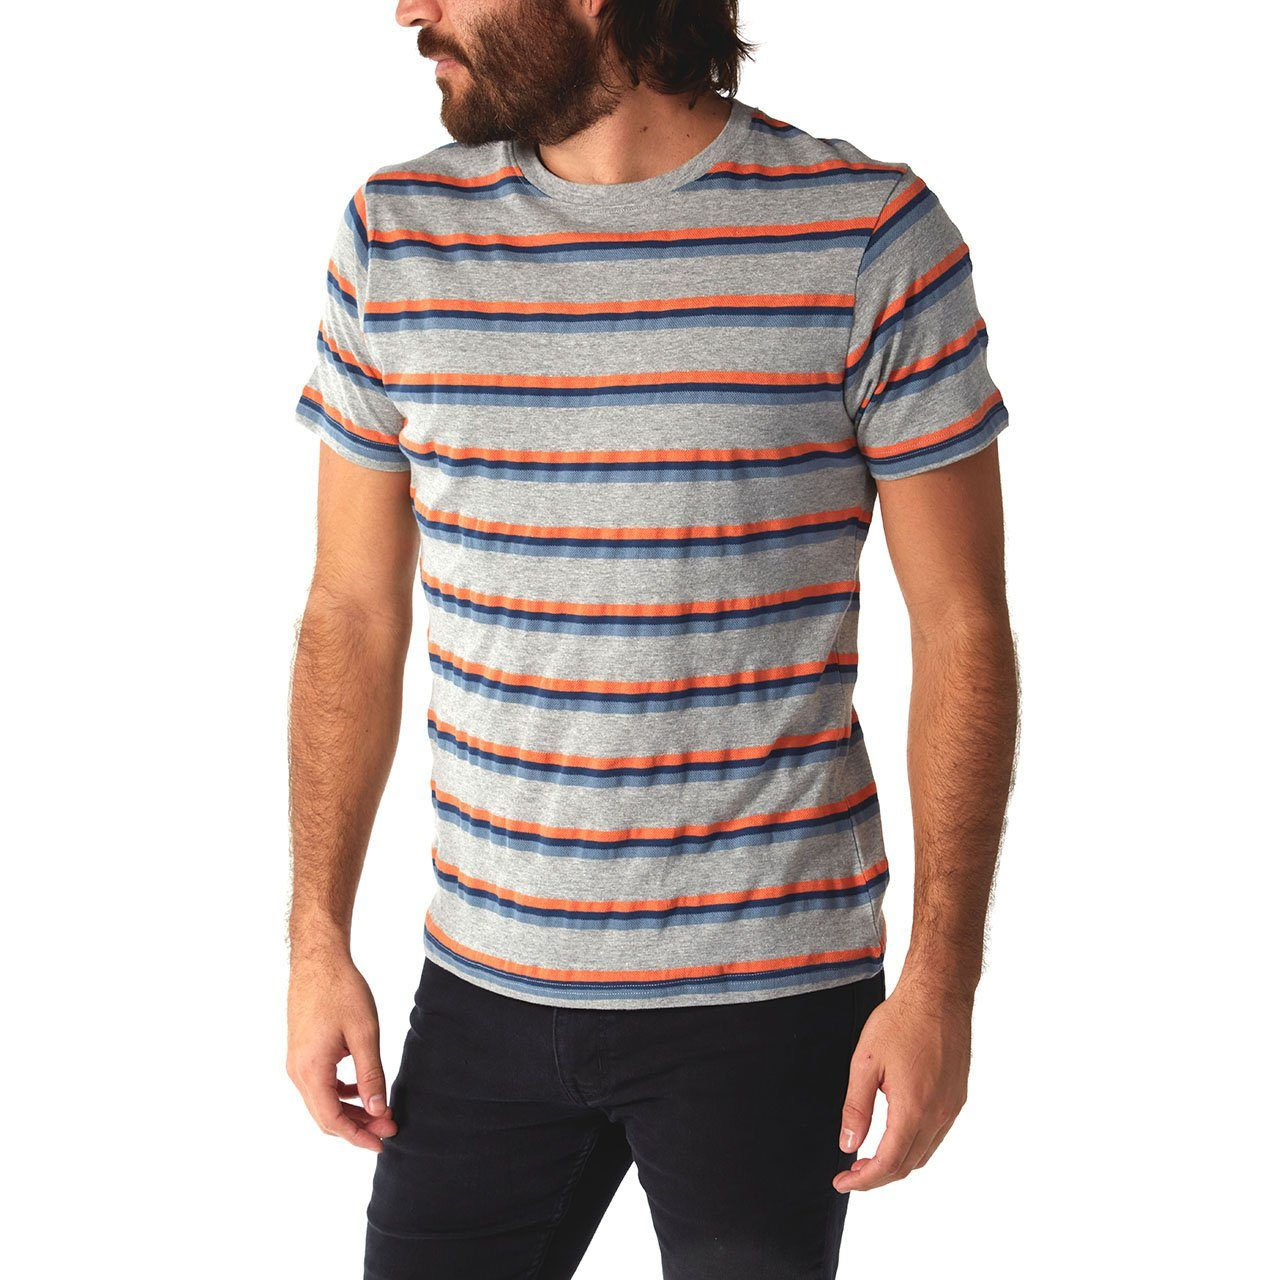 Crew Neck Tees - Hunter Striped Tee